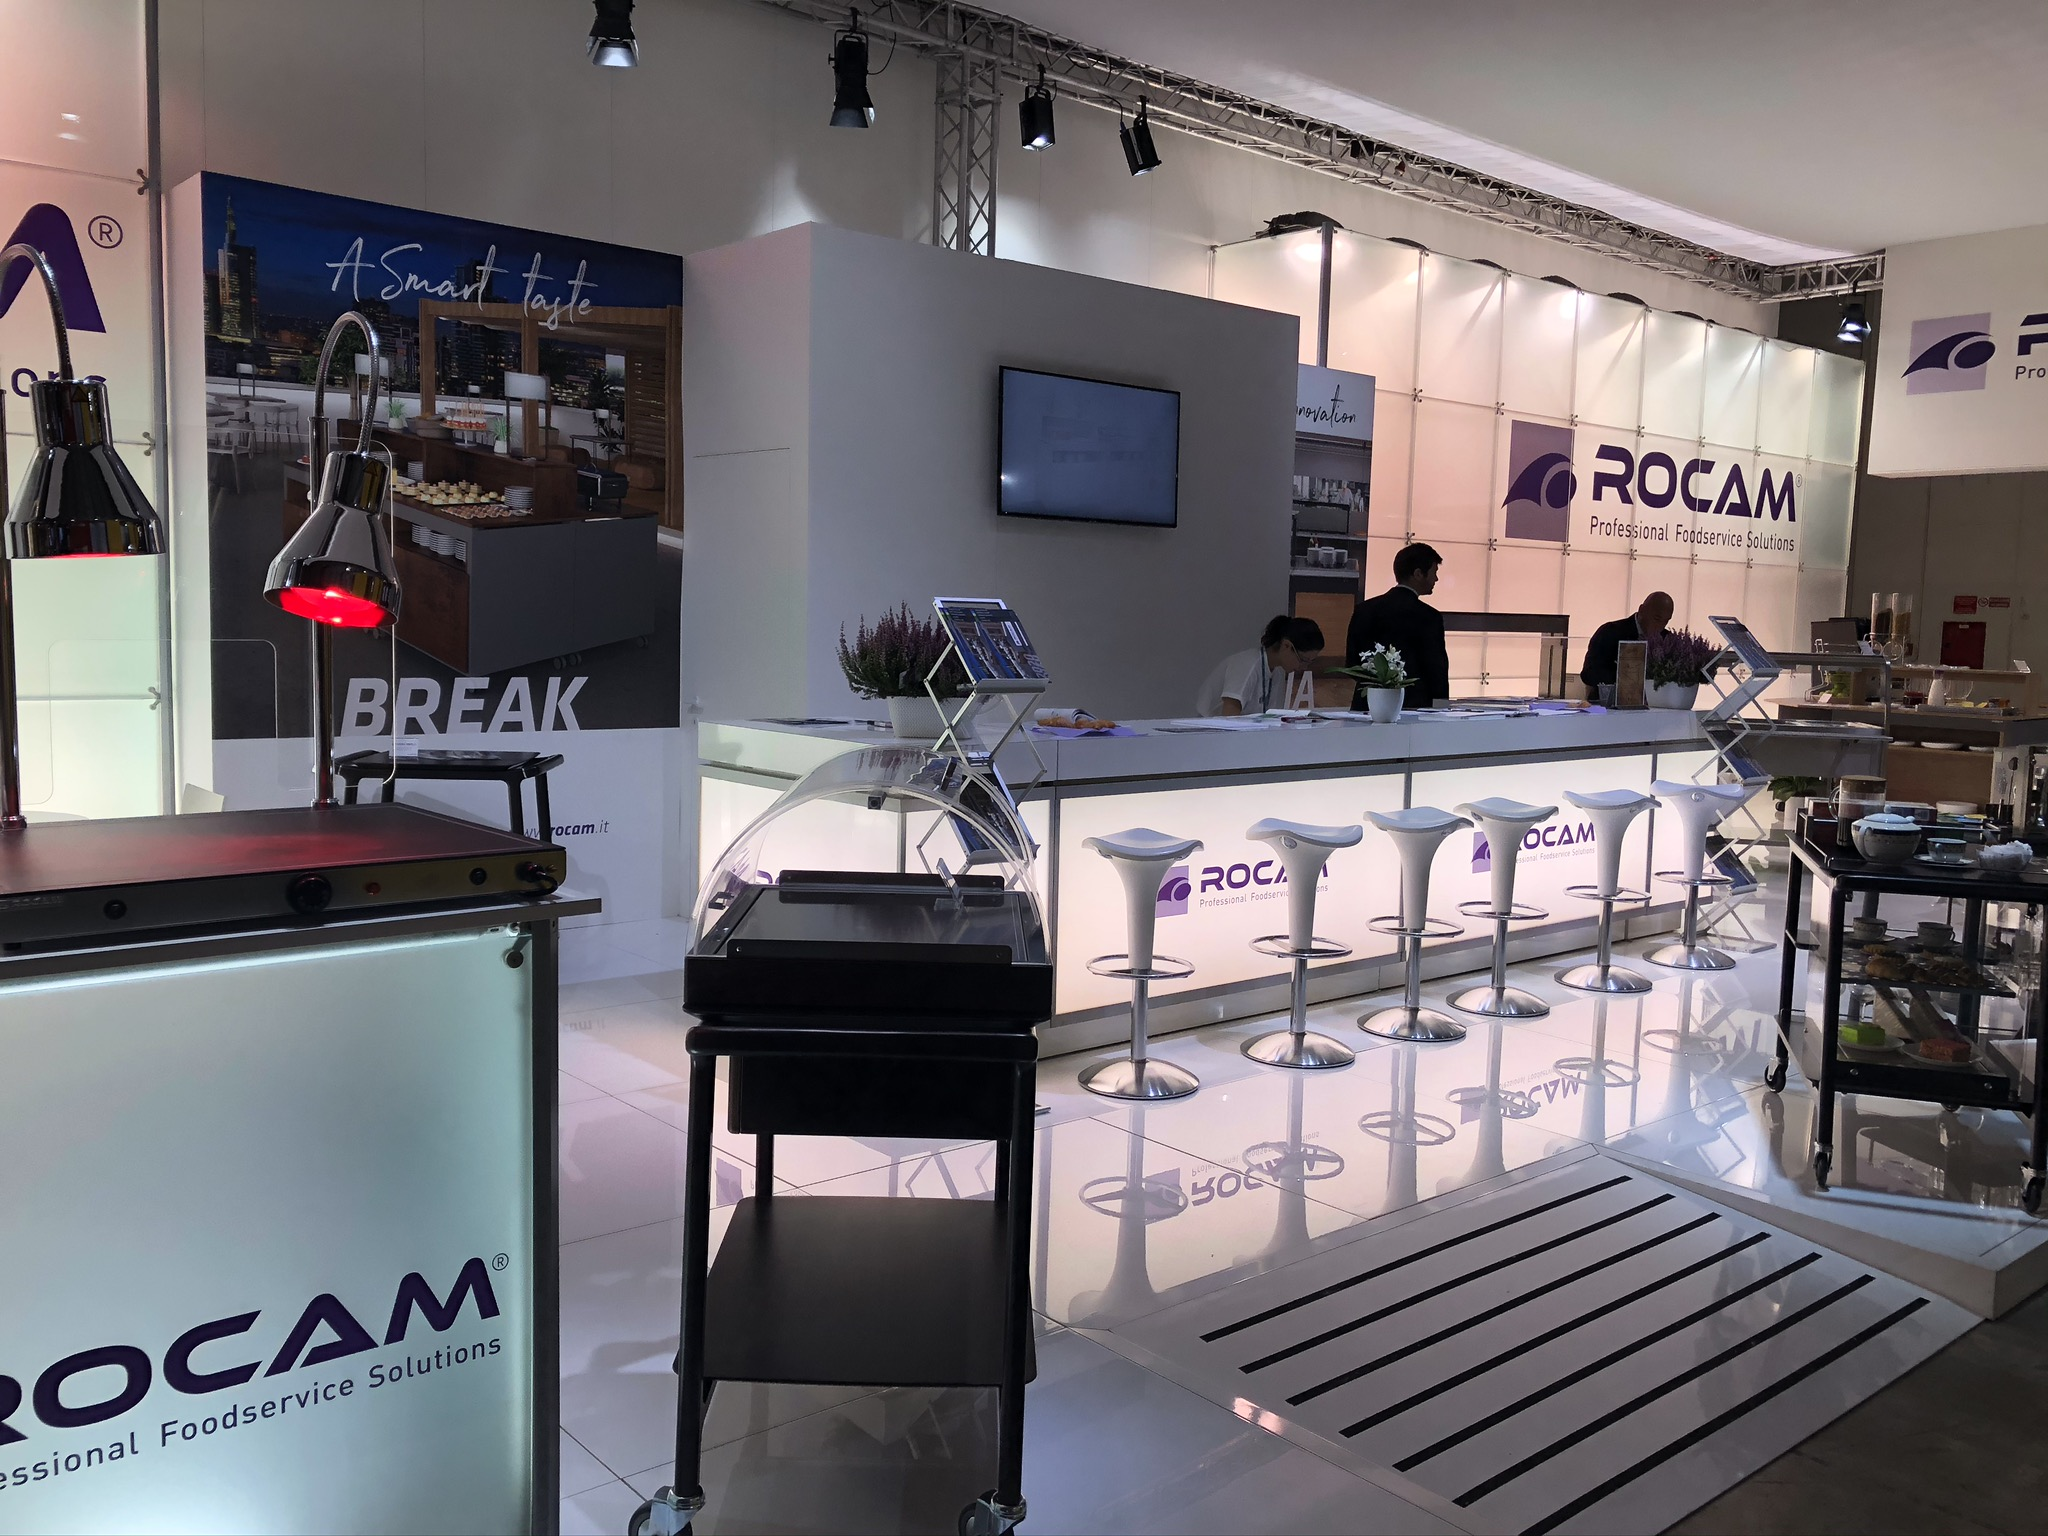 ROCAM Professional foodservice trolleys